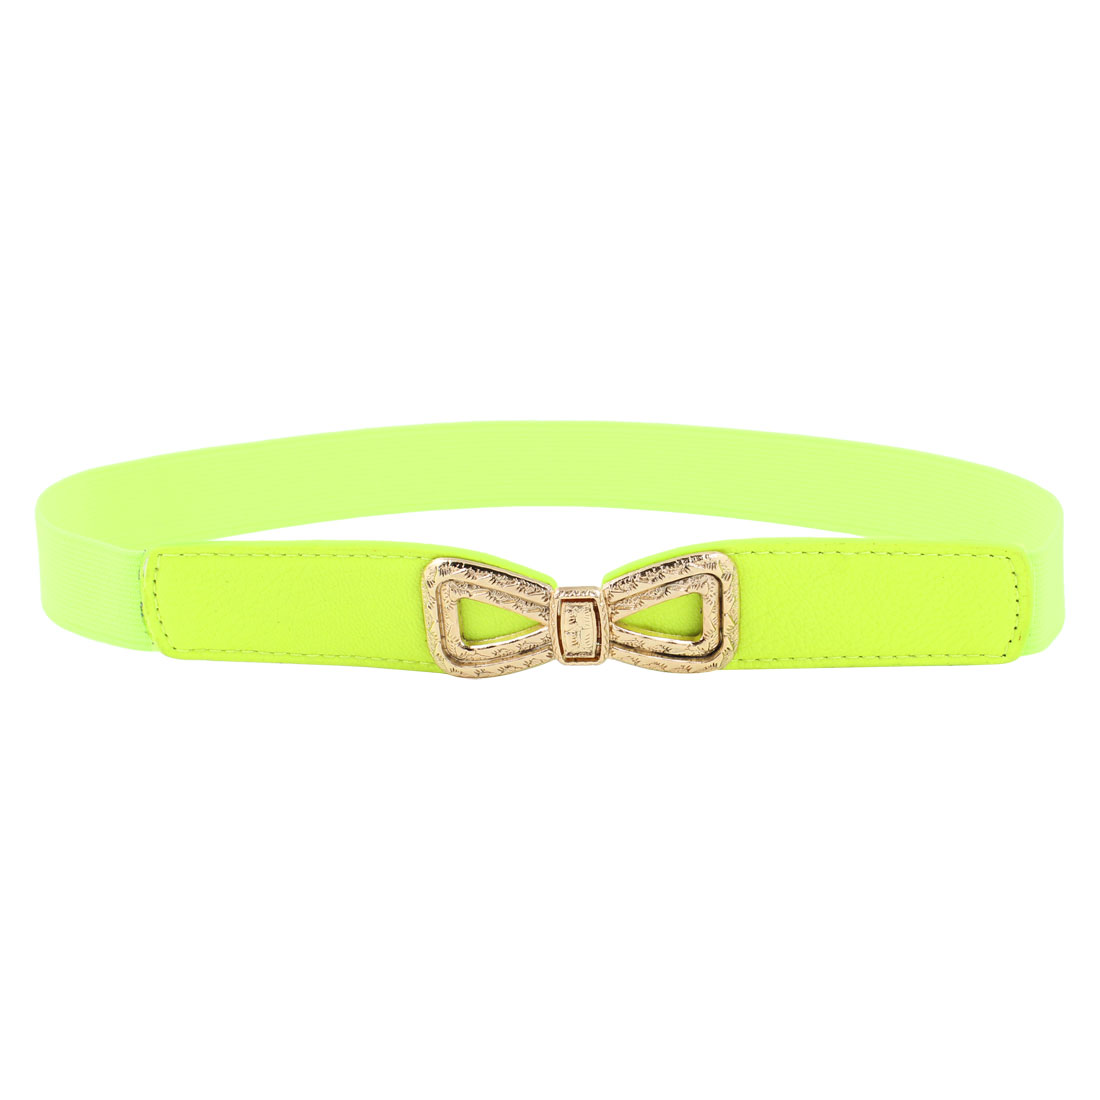 1inches Wide Faux Leather Elastic Band Slim Waist Belt Yellowgreen for Lady